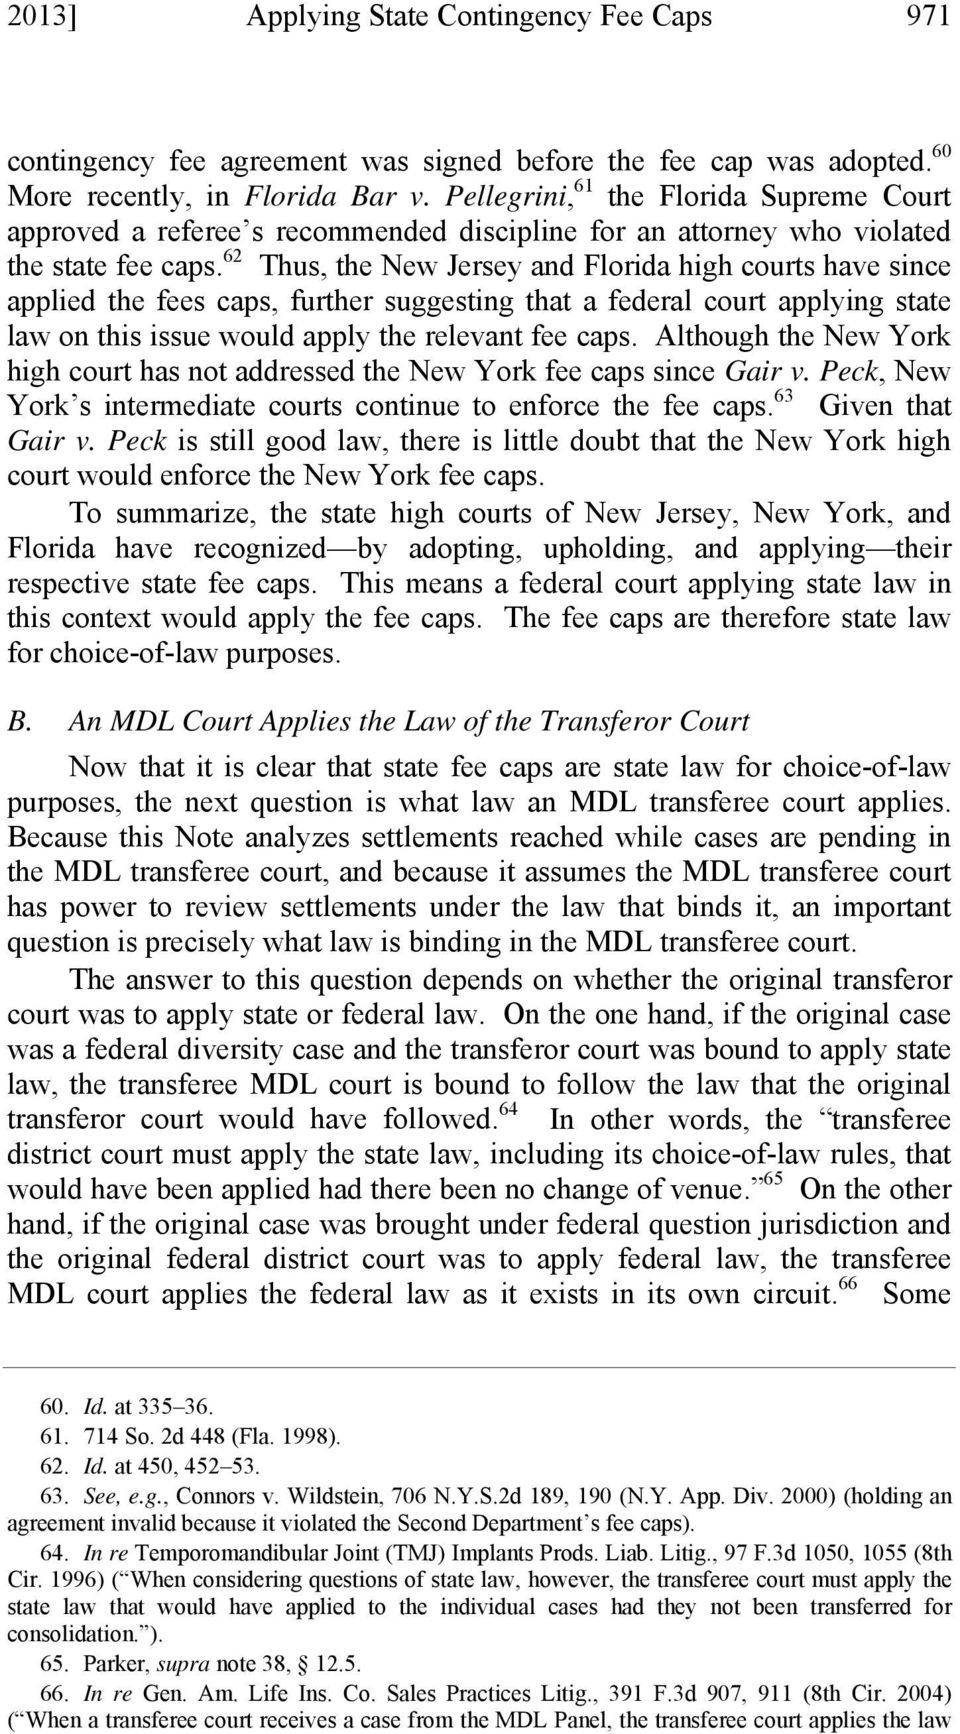 62 Thus, the New Jersey and Florida high courts have since applied the fees caps, further suggesting that a federal court applying state law on this issue would apply the relevant fee caps.